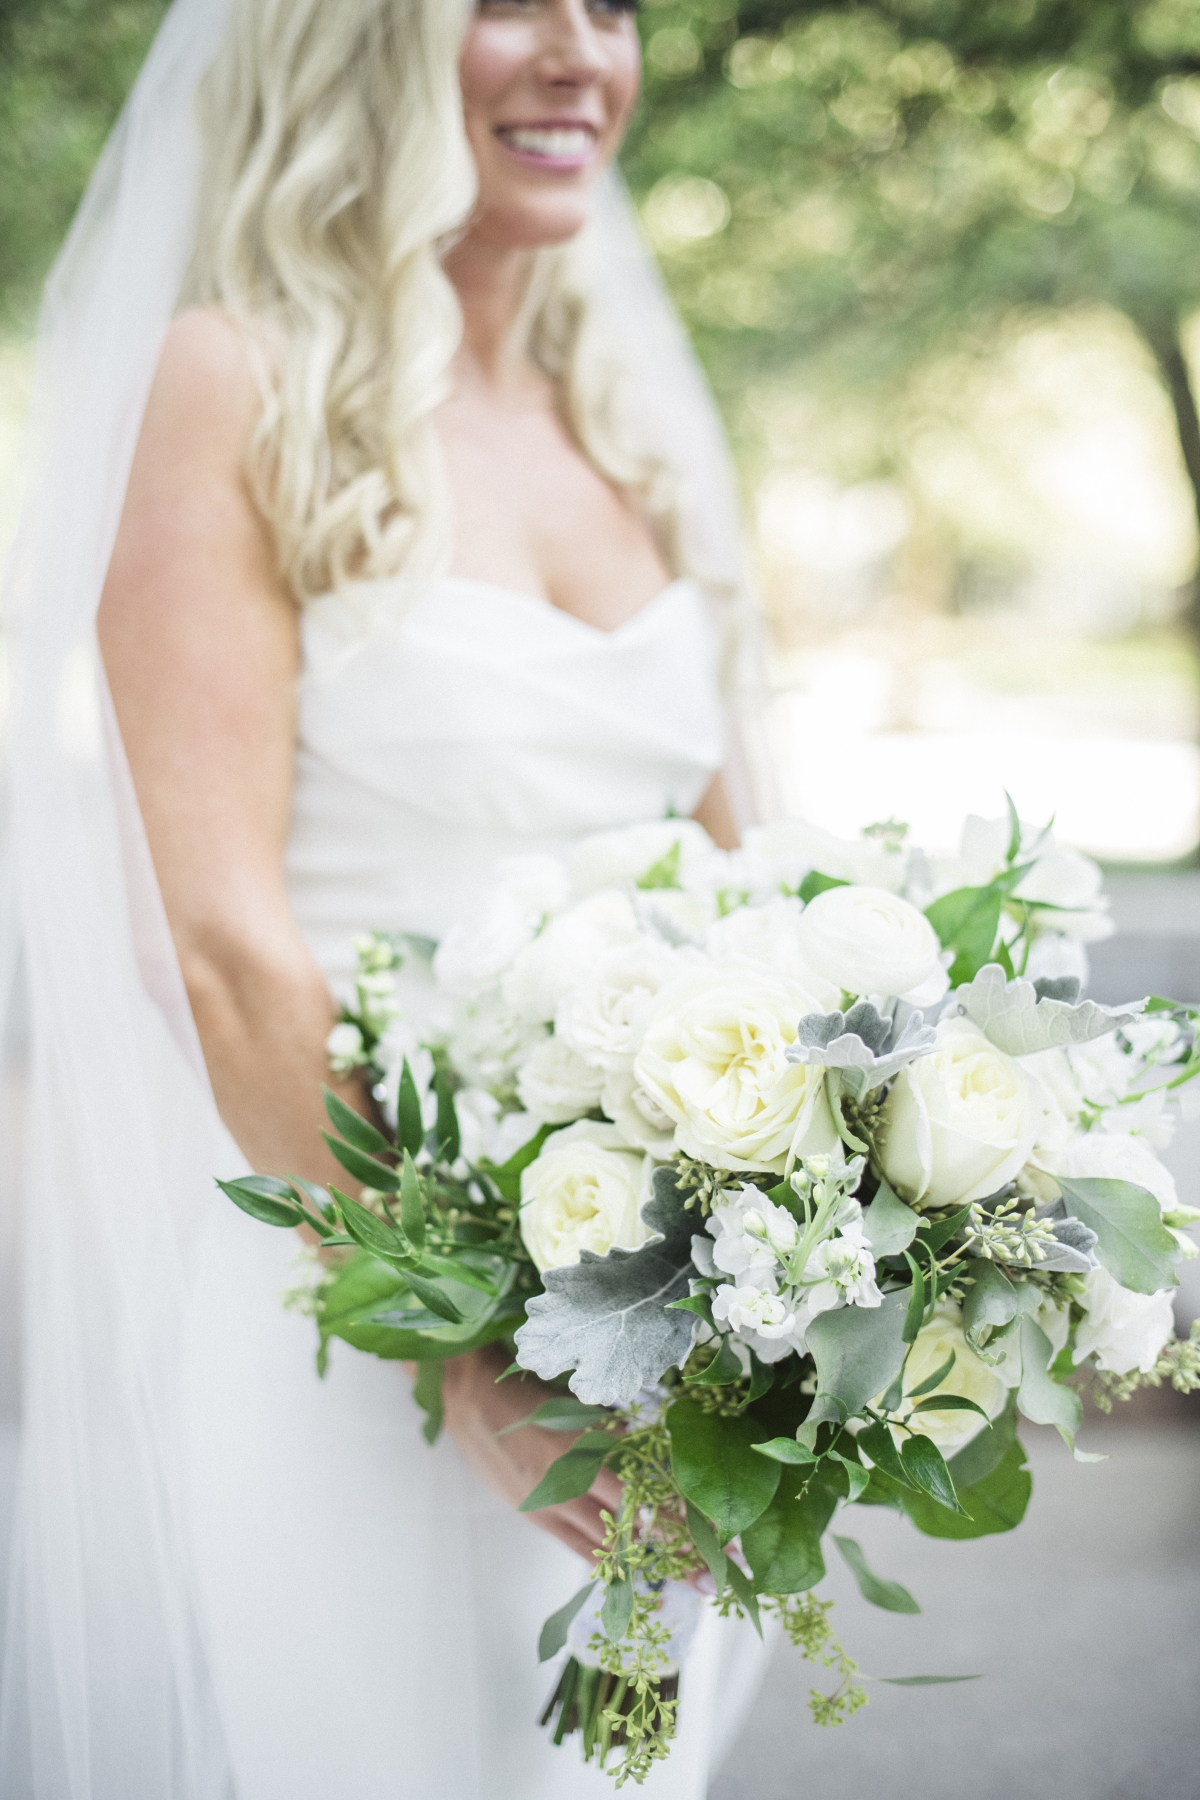 Ivory Bridal Bouquet from Dilly Lily